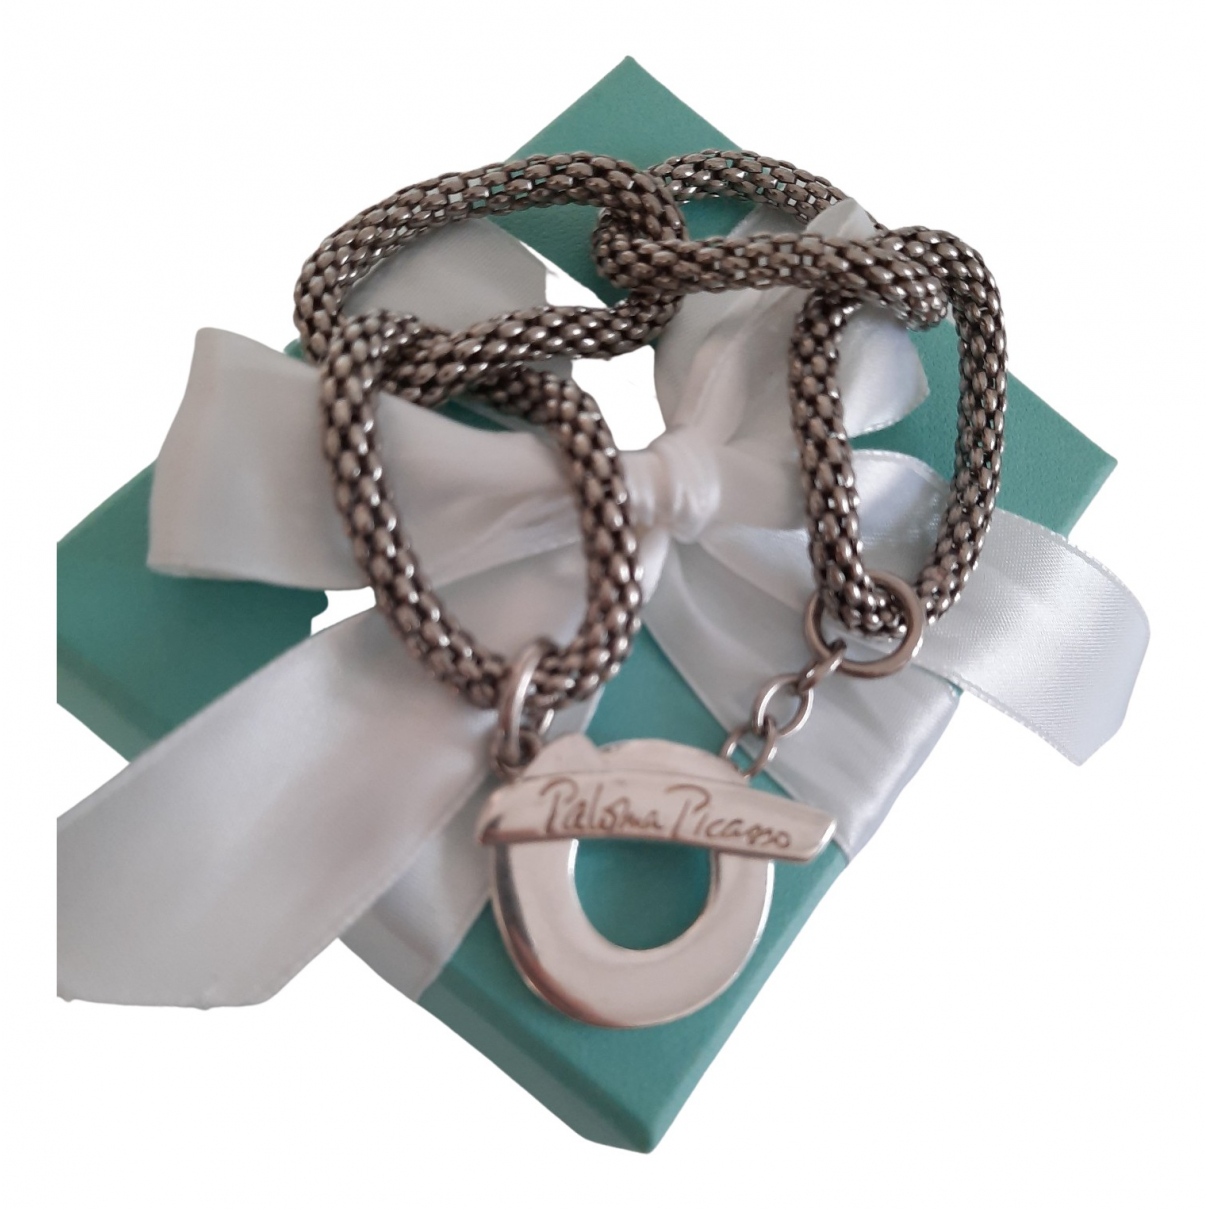 Tiffany & Co Paloma Picasso Armband in  Grau Silber